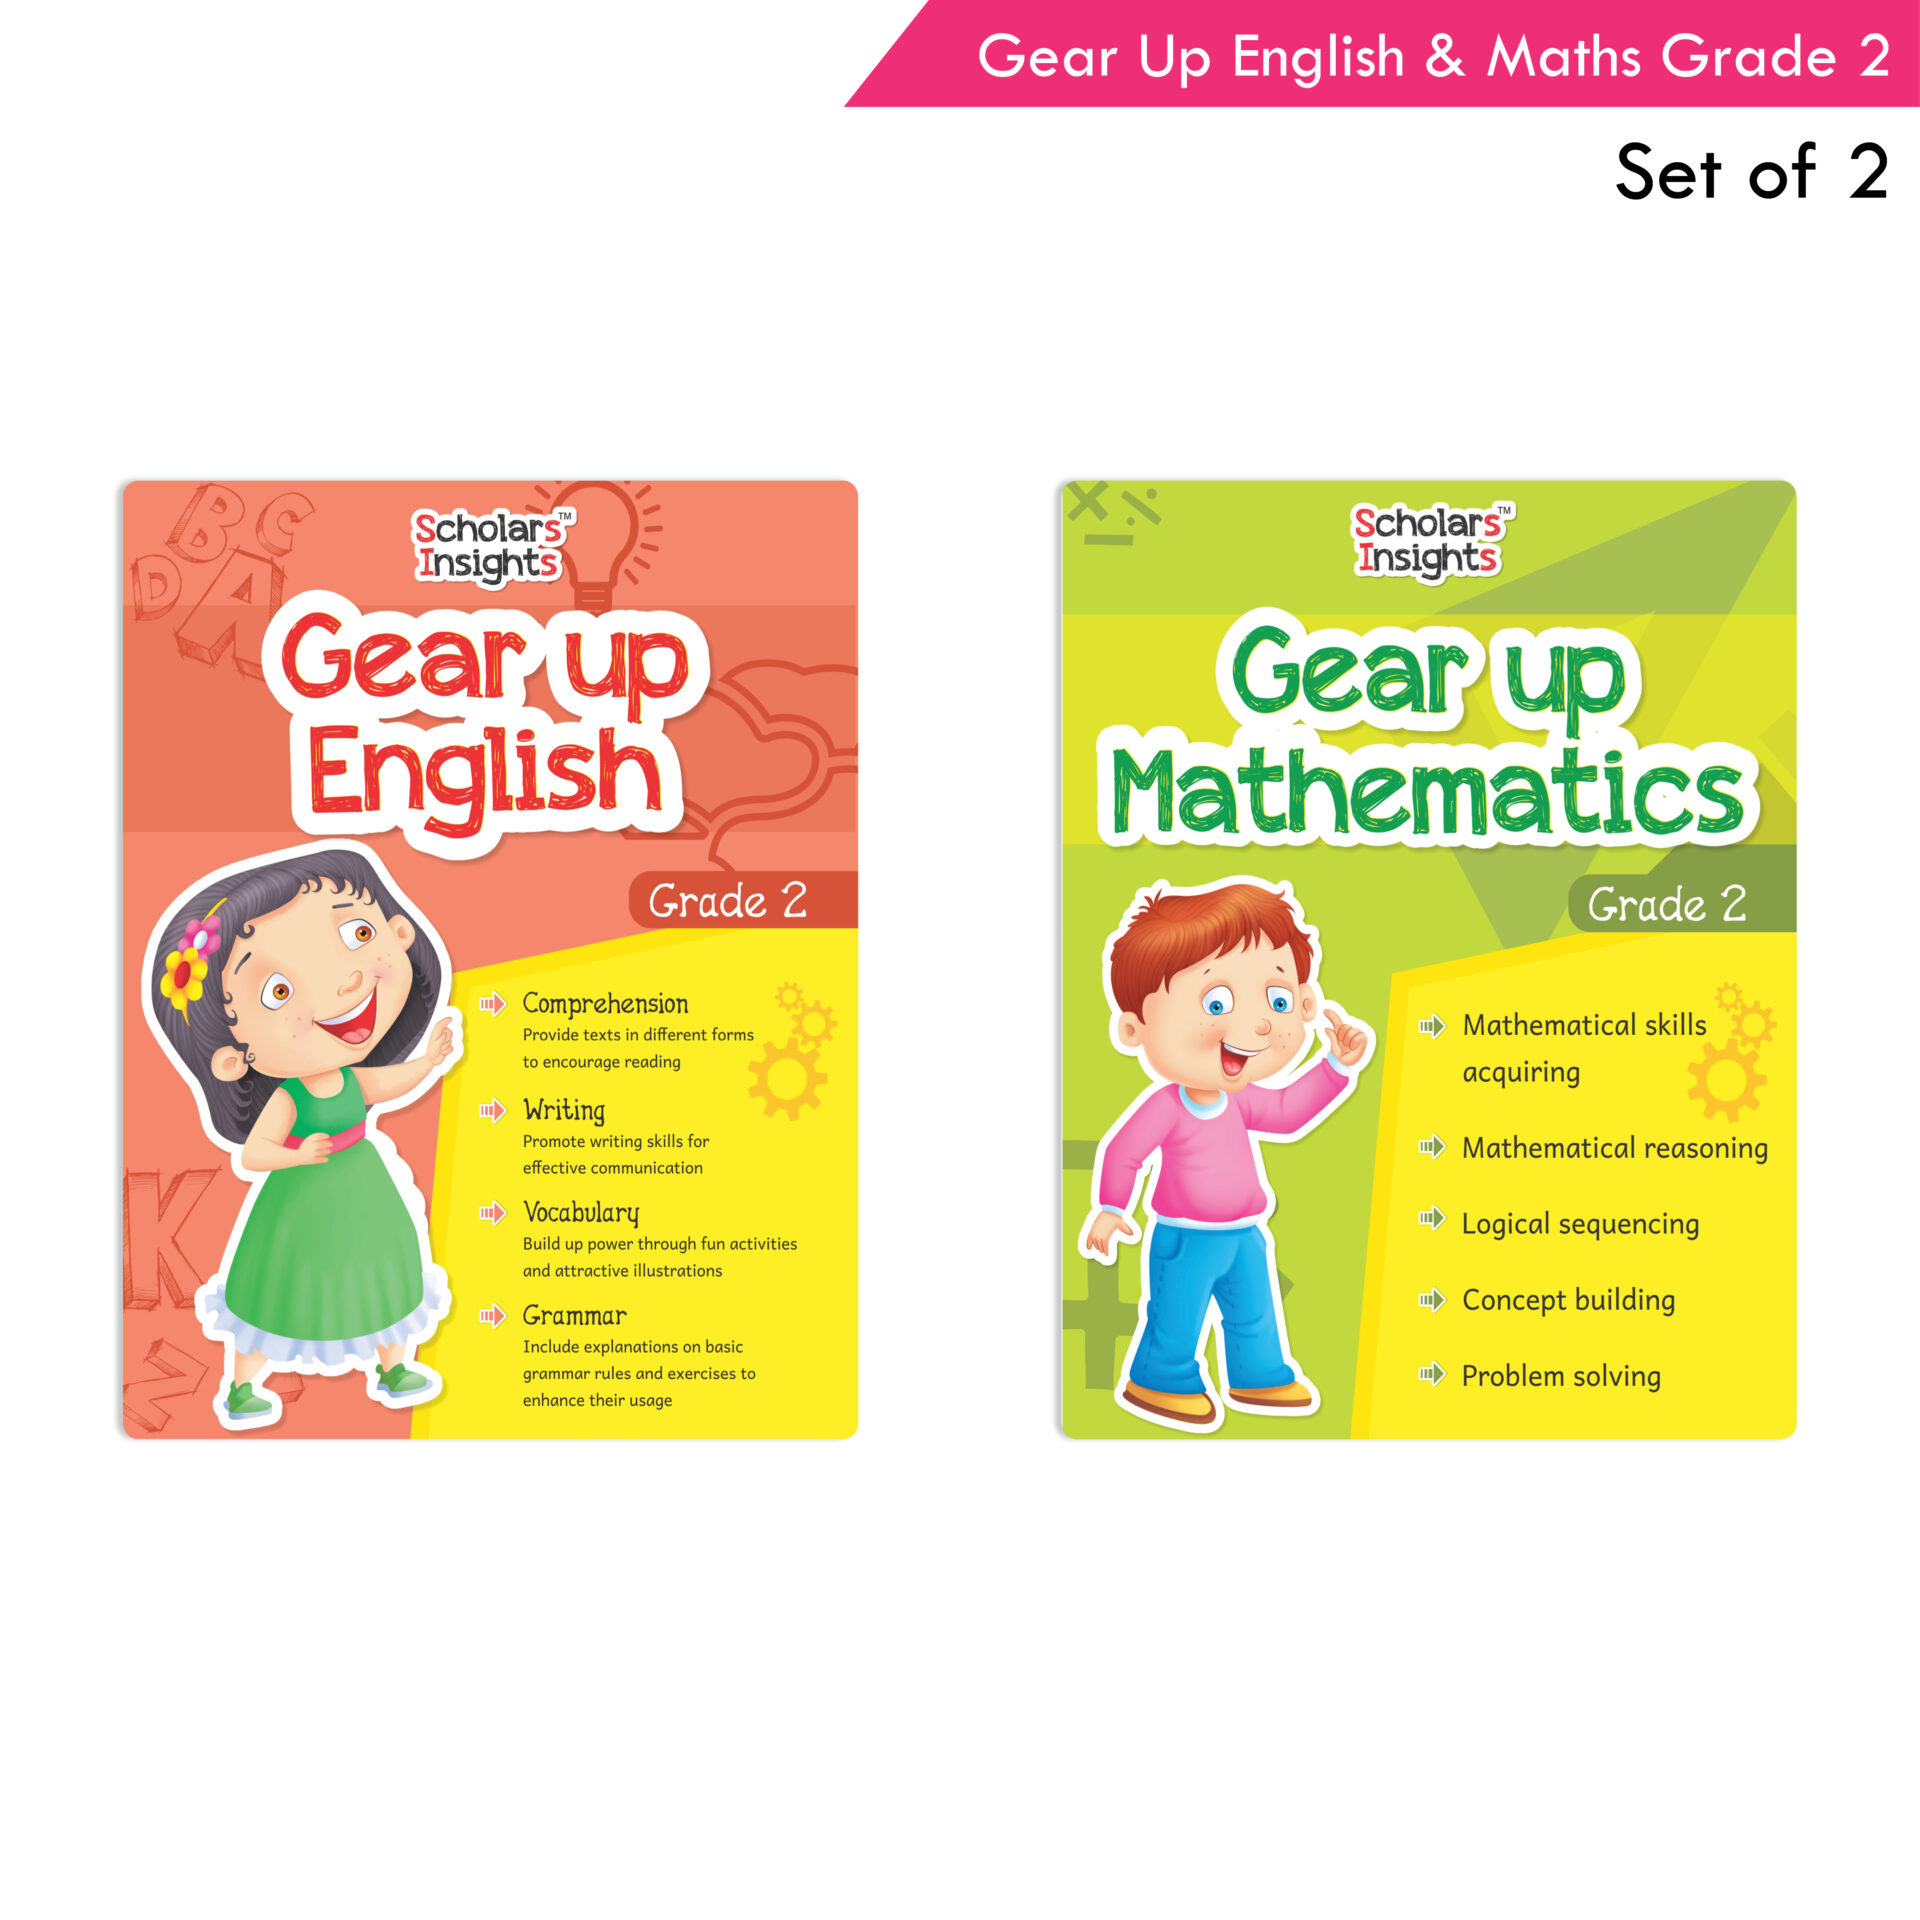 Scholars Insights Gear Up English and Maths Grade 2 Set of 2 1